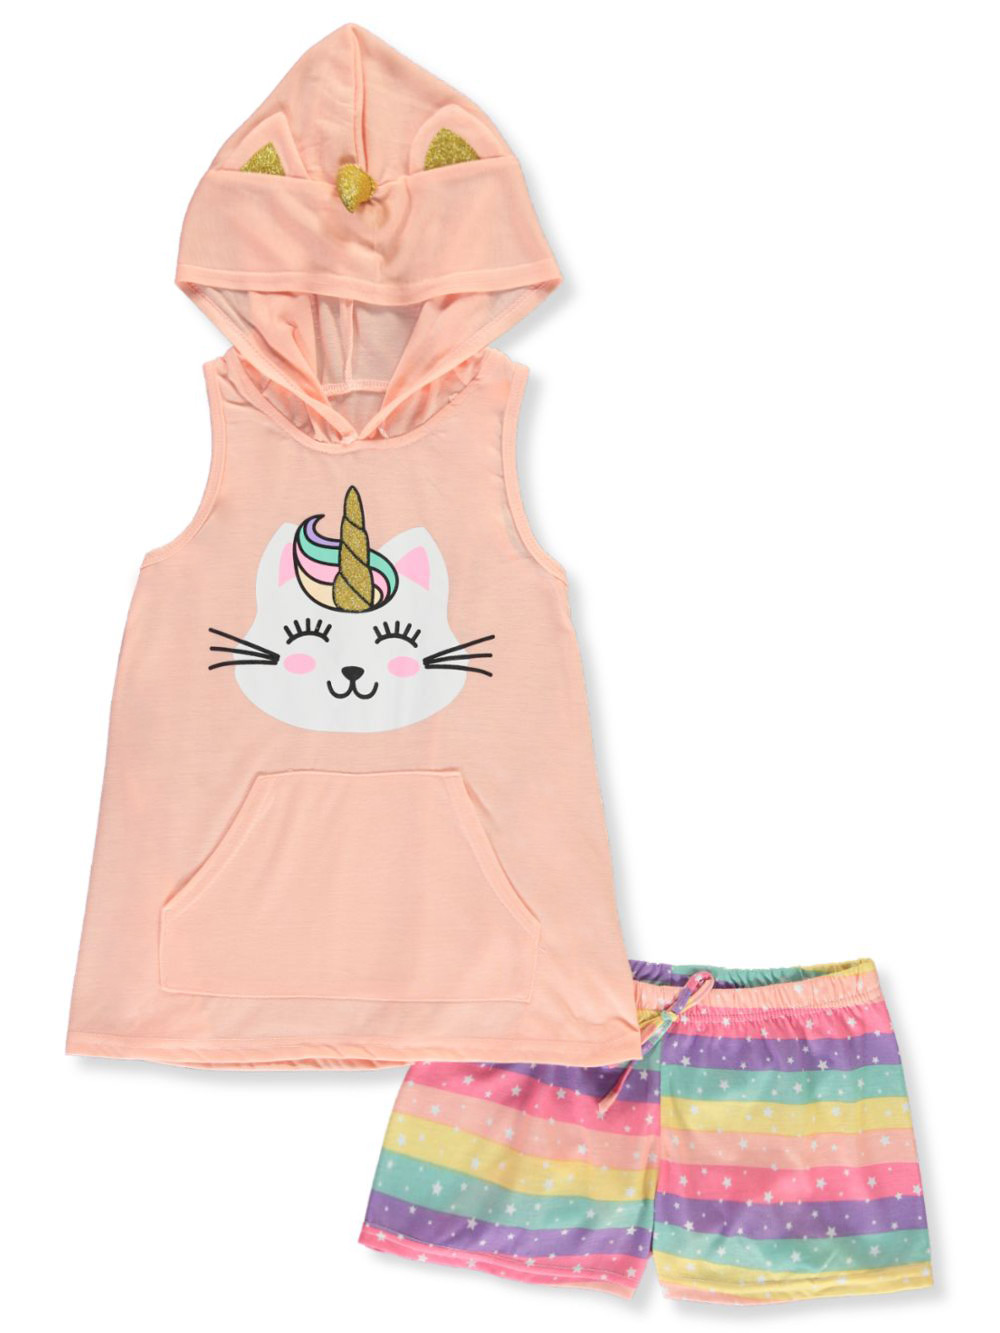 Size 10-12 Pajamas for Girls